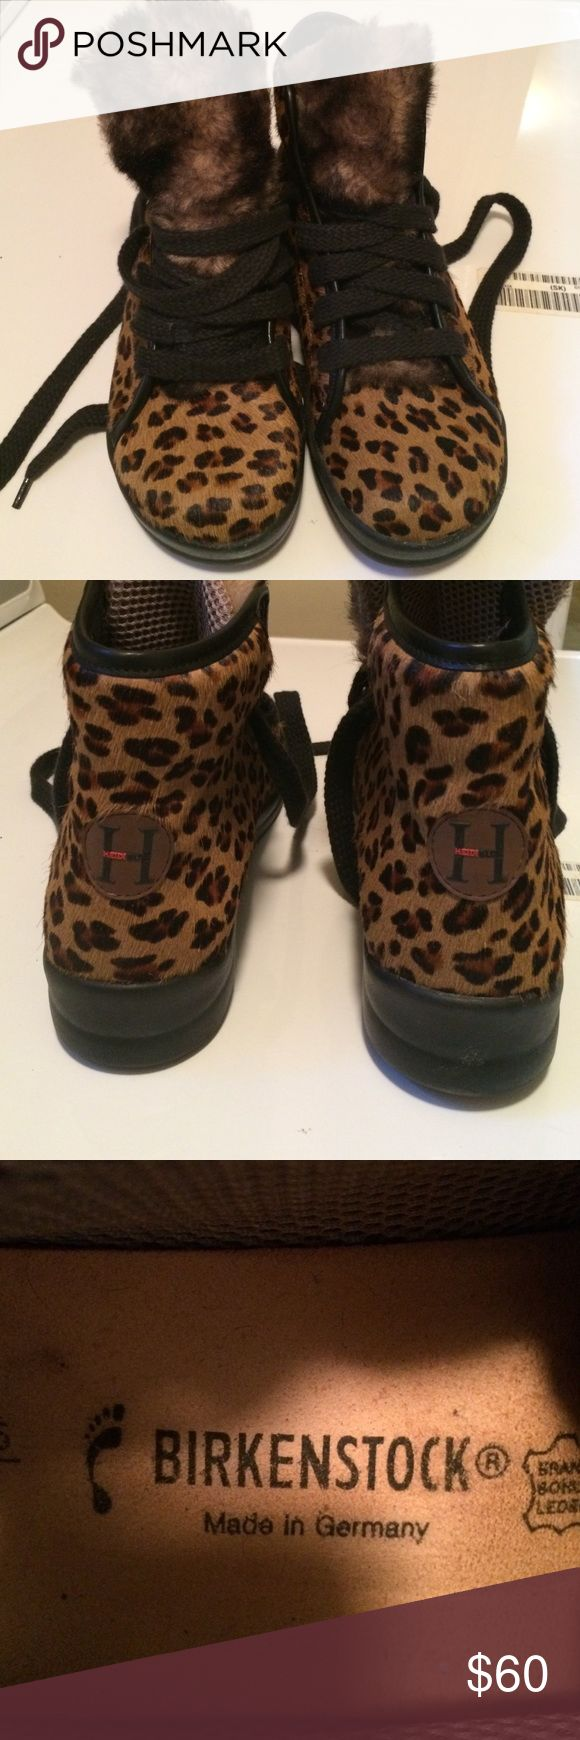 Rare Birkenstock Sneakers Heidi Klum SE Super cute Birkenstocks ! Pony hair, Faux animal fur and print. Good condition but they could use some new shoe laces. Super comfortable! Birkenstock Shoes Sneakers